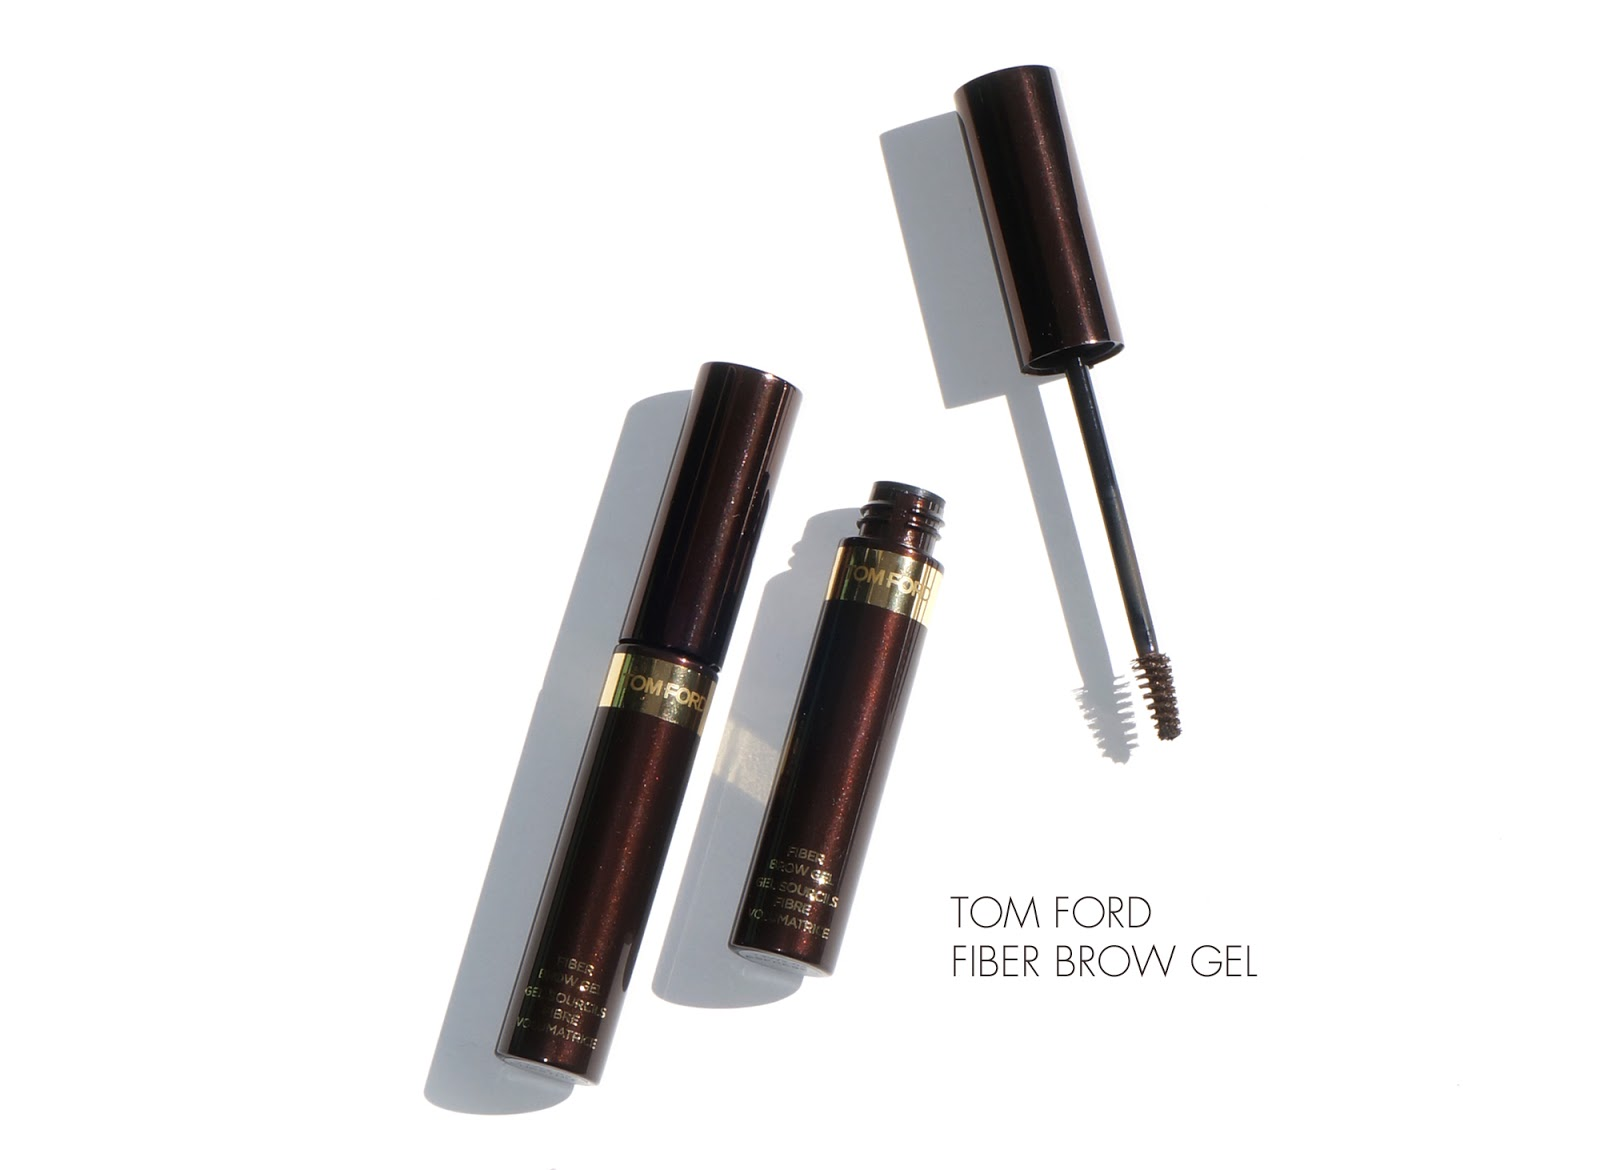 The Beauty Look Book - Tom Ford Fiber Brow Gel